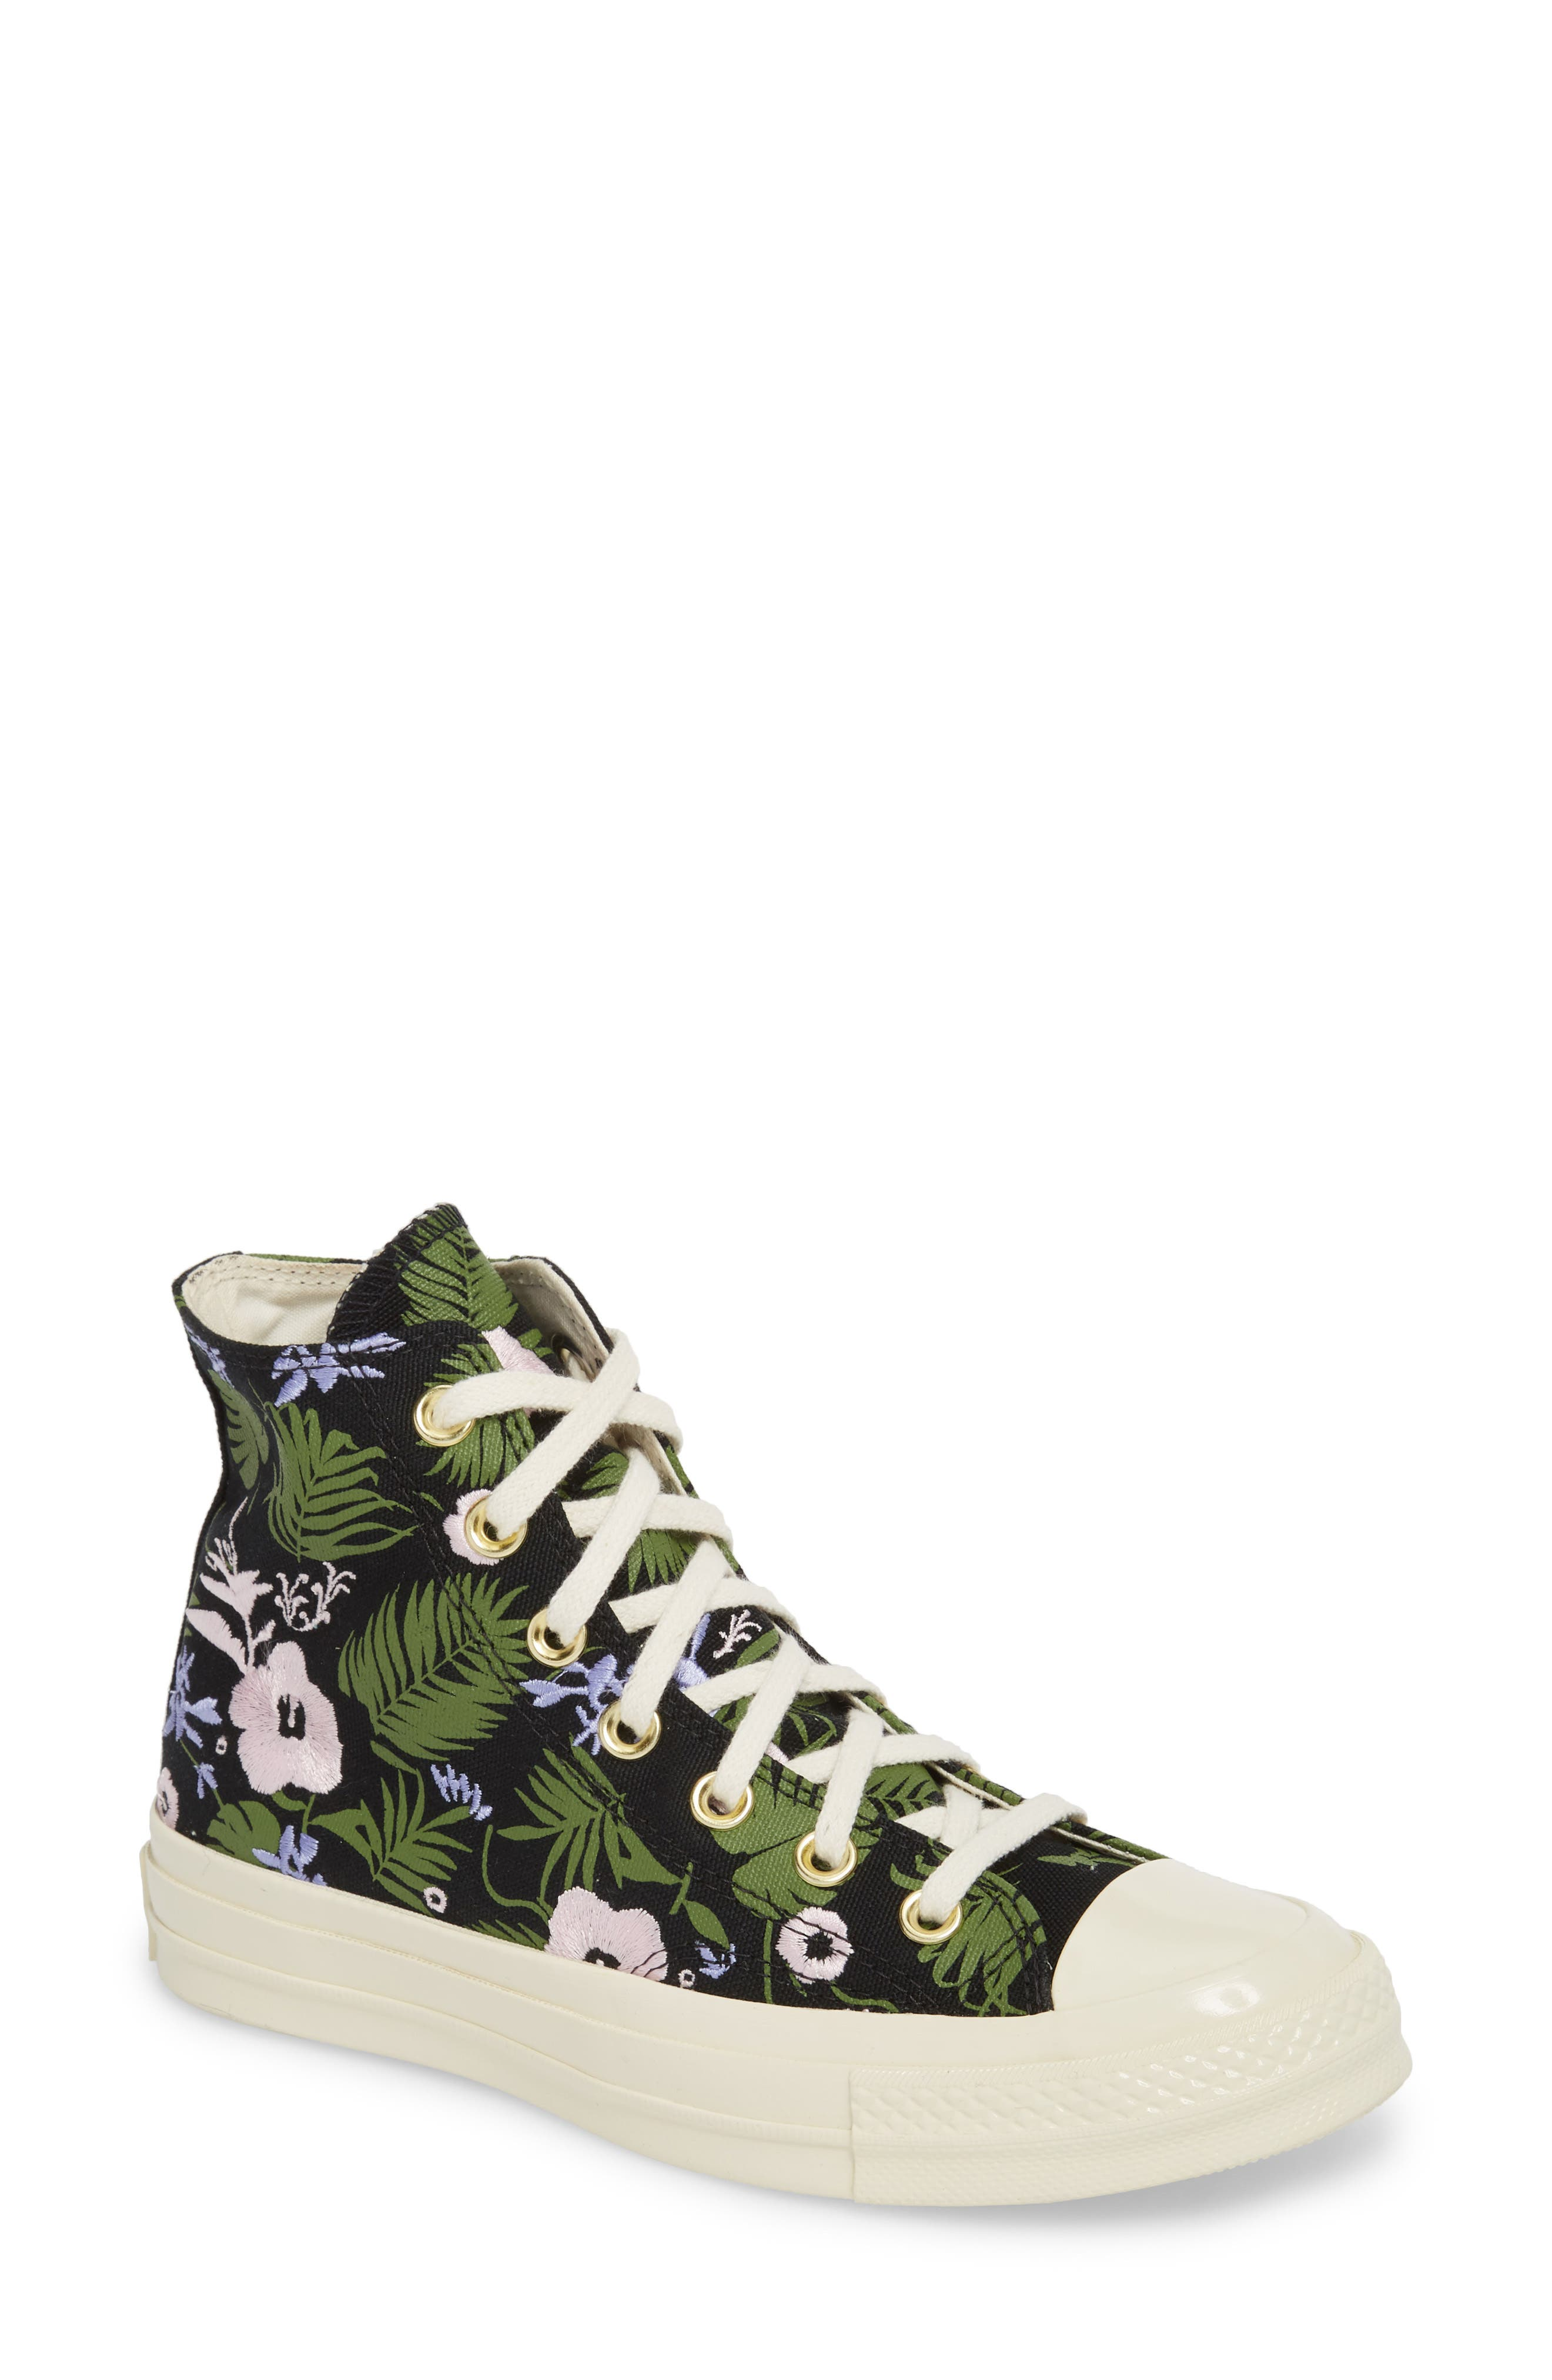 Chuck Taylor<sup>®</sup> All Star<sup>®</sup> 70 Palm Print High Top Sneaker,                             Main thumbnail 1, color,                             Black/ Cherry